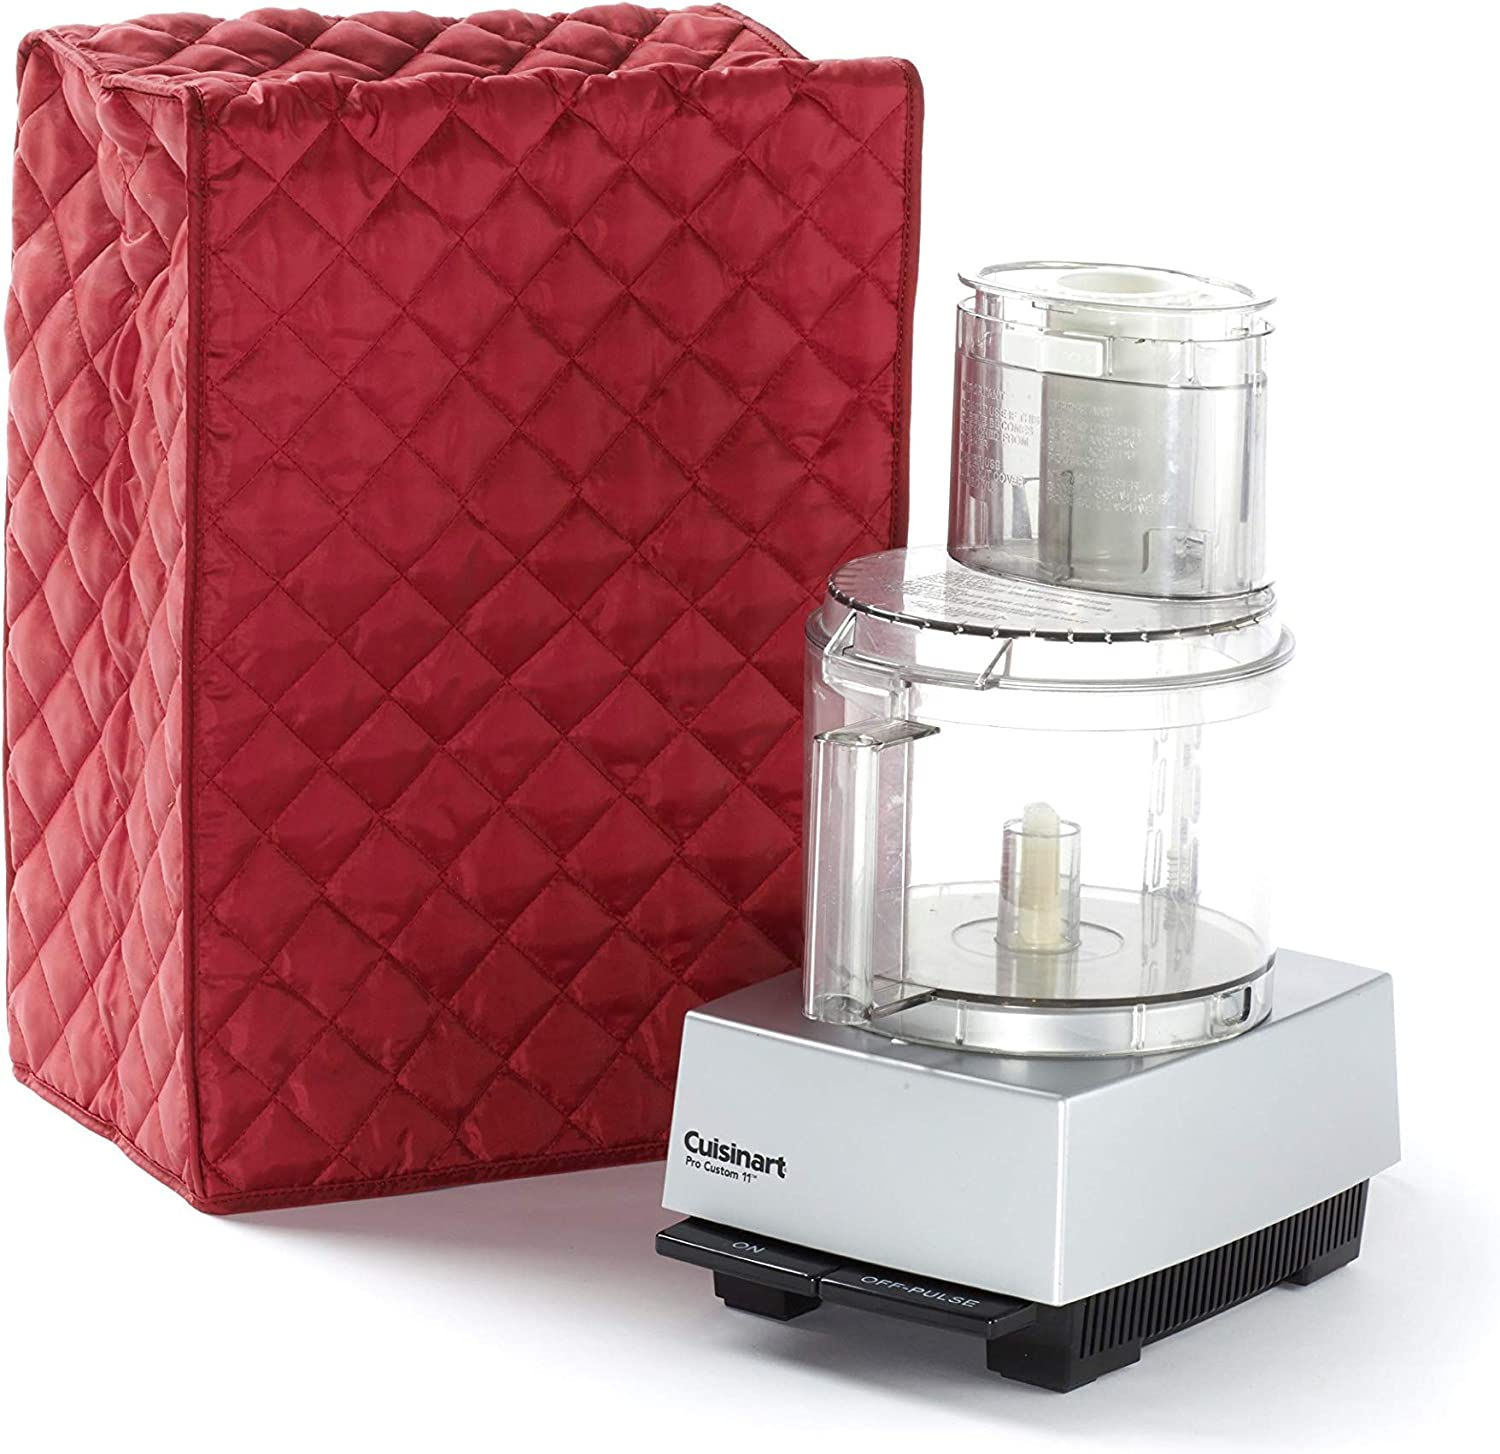 Covermates Food Processor Cover 12W x 8D x 17H Diamond Collection 2 YR Warranty Year Around Protection – Red